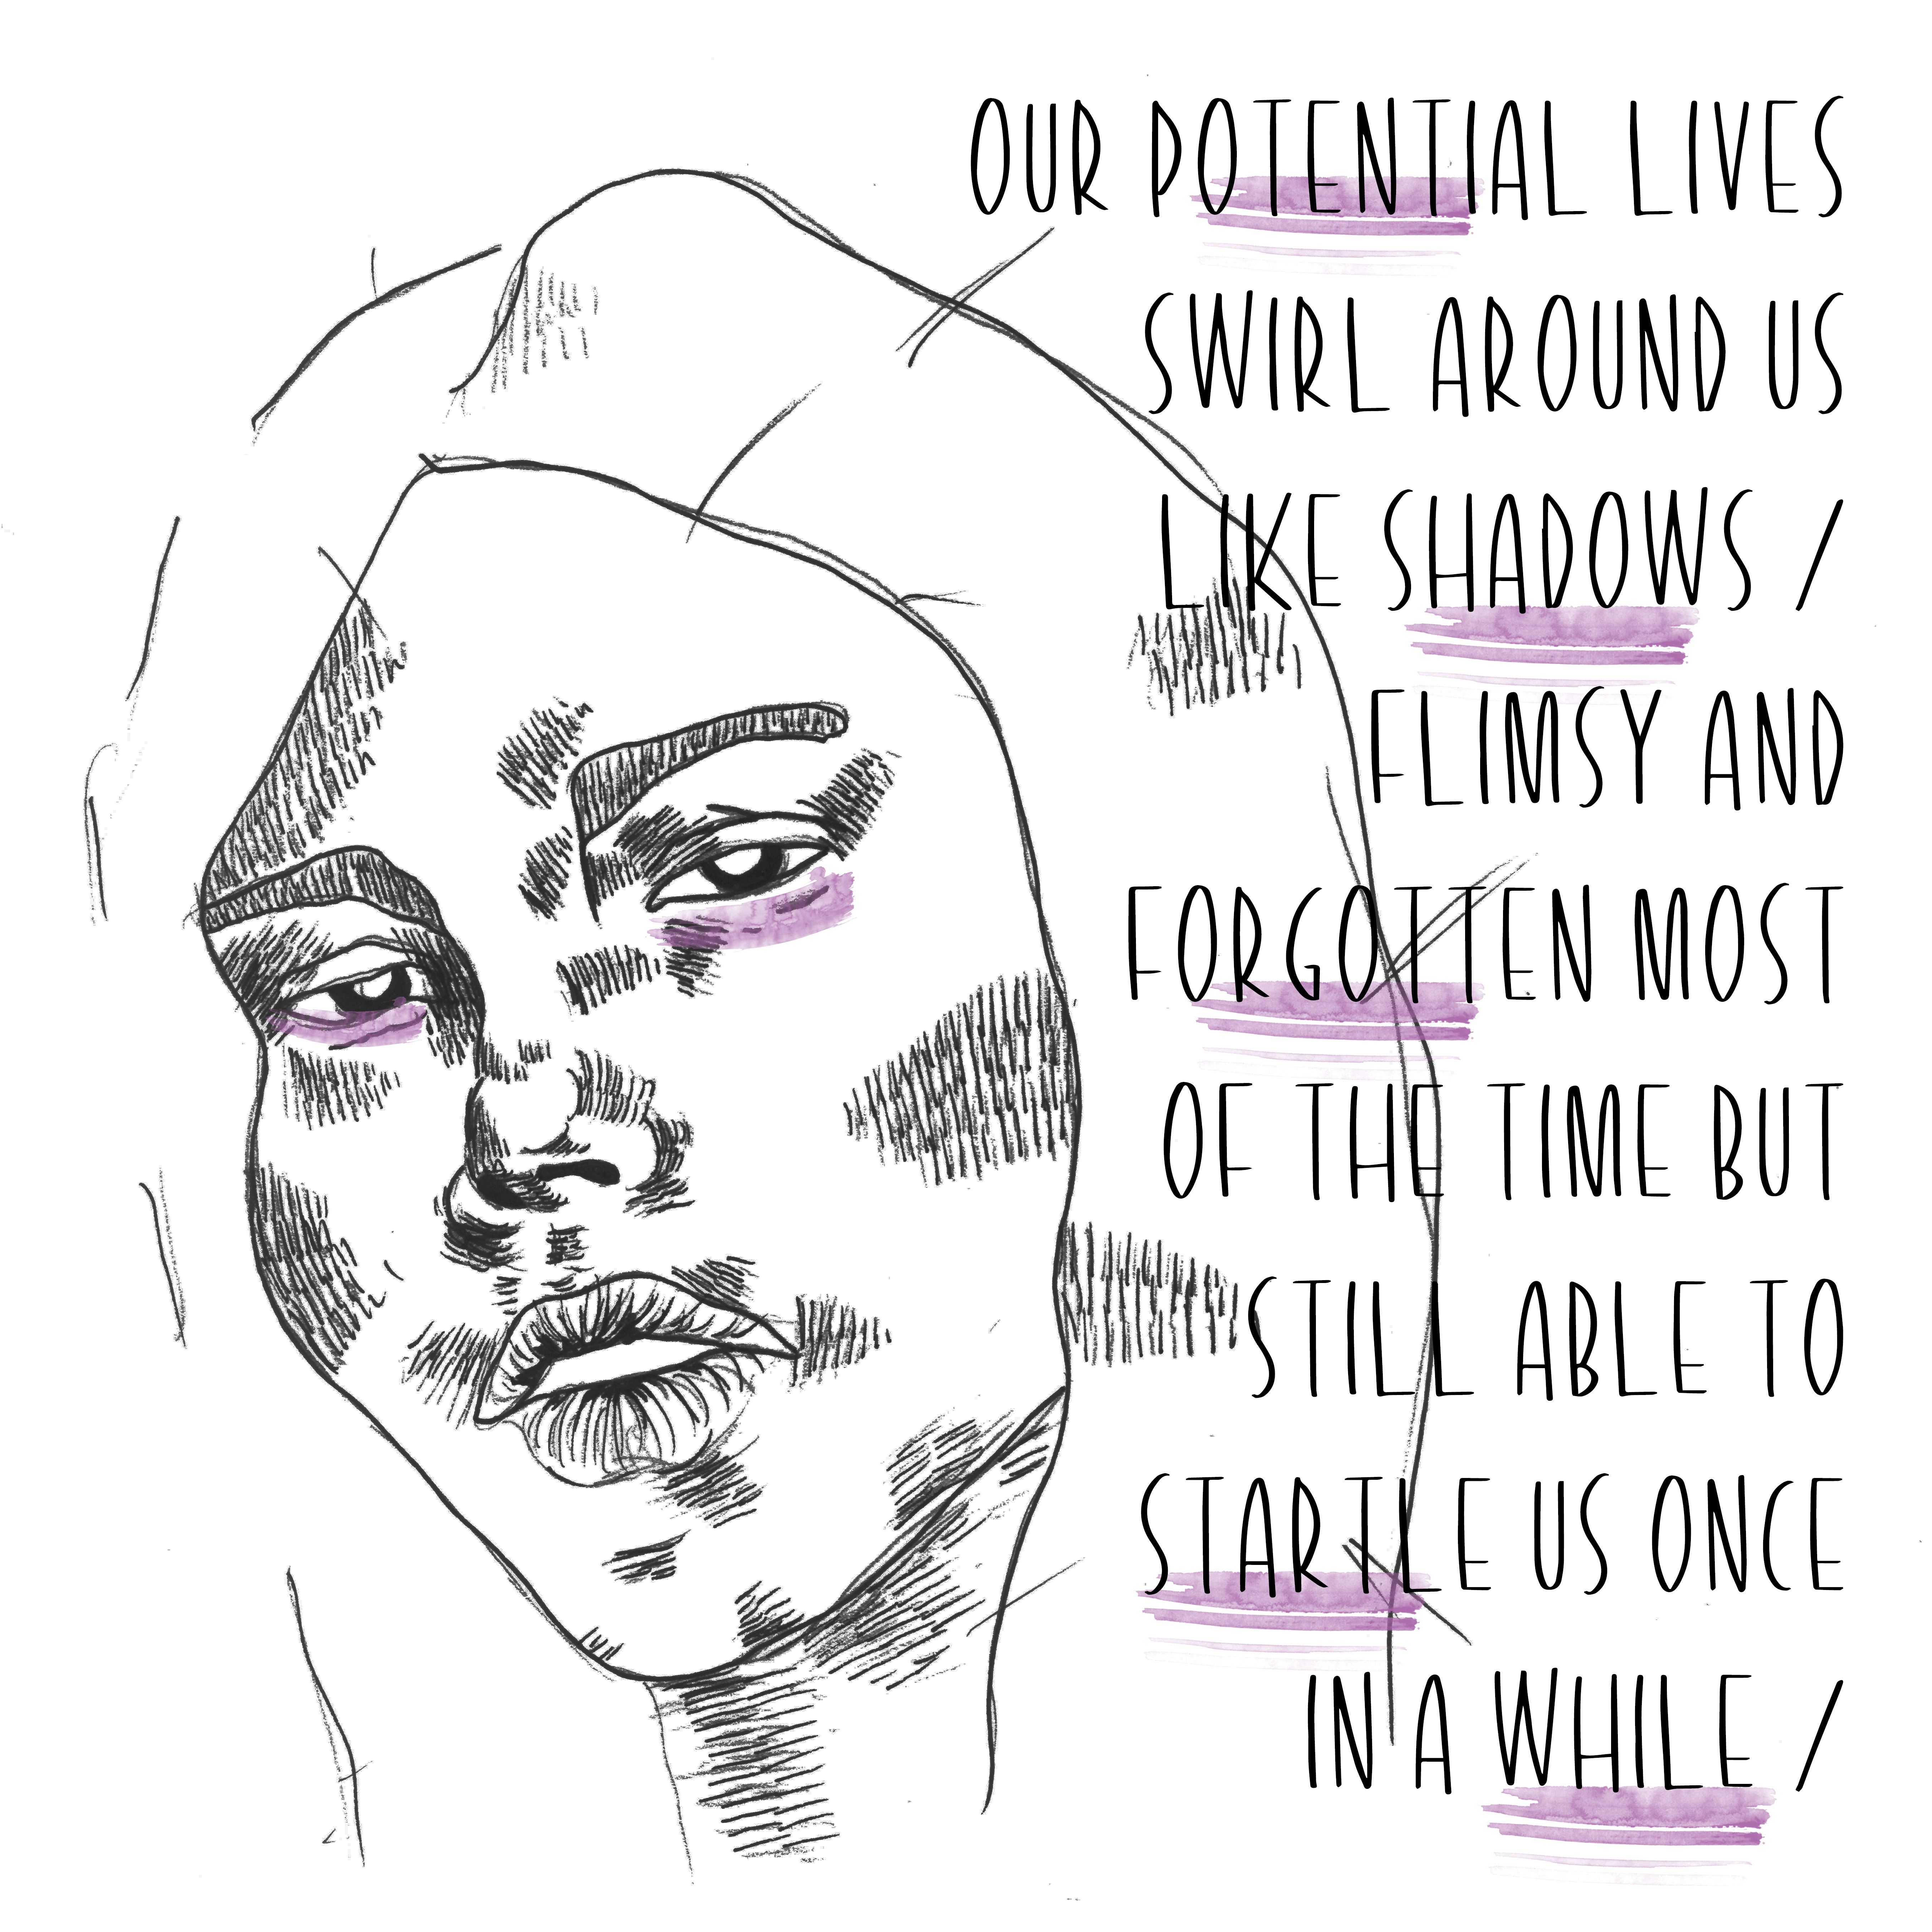 our potential lives